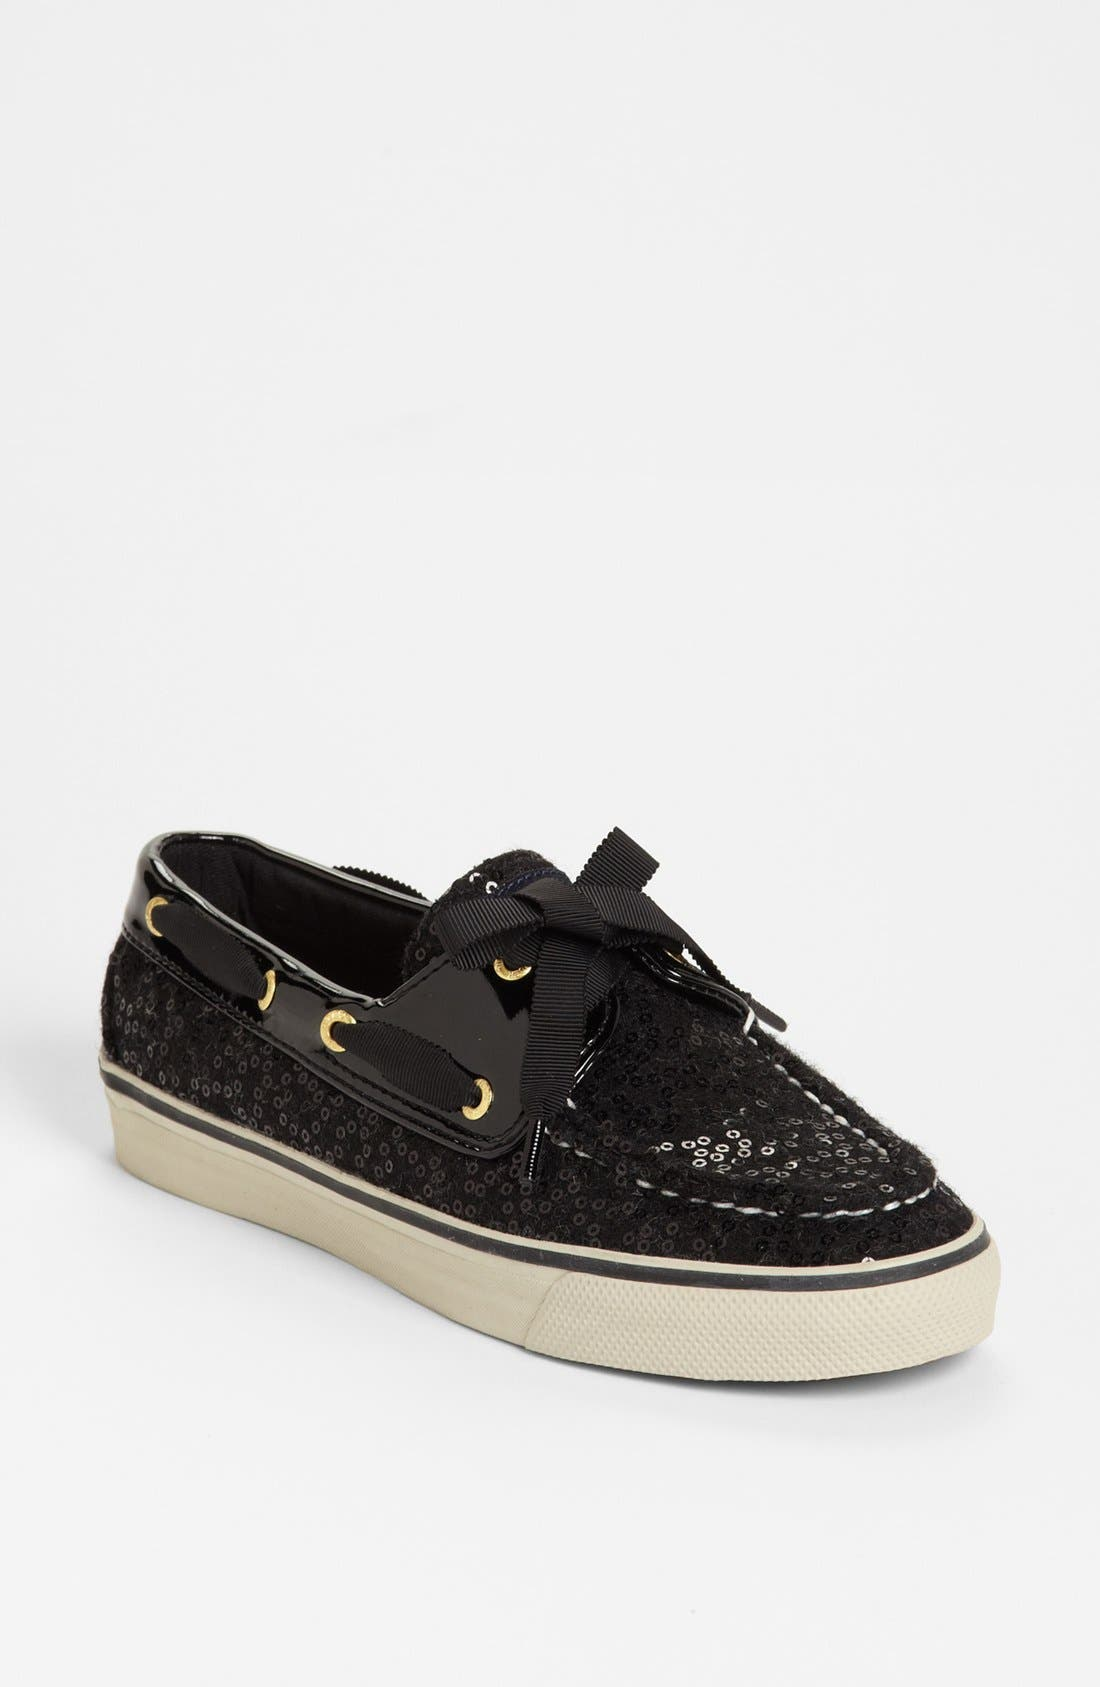 Alternate Image 1 Selected - SPERRY BAHAMA SEQUIN BOAT SHOE